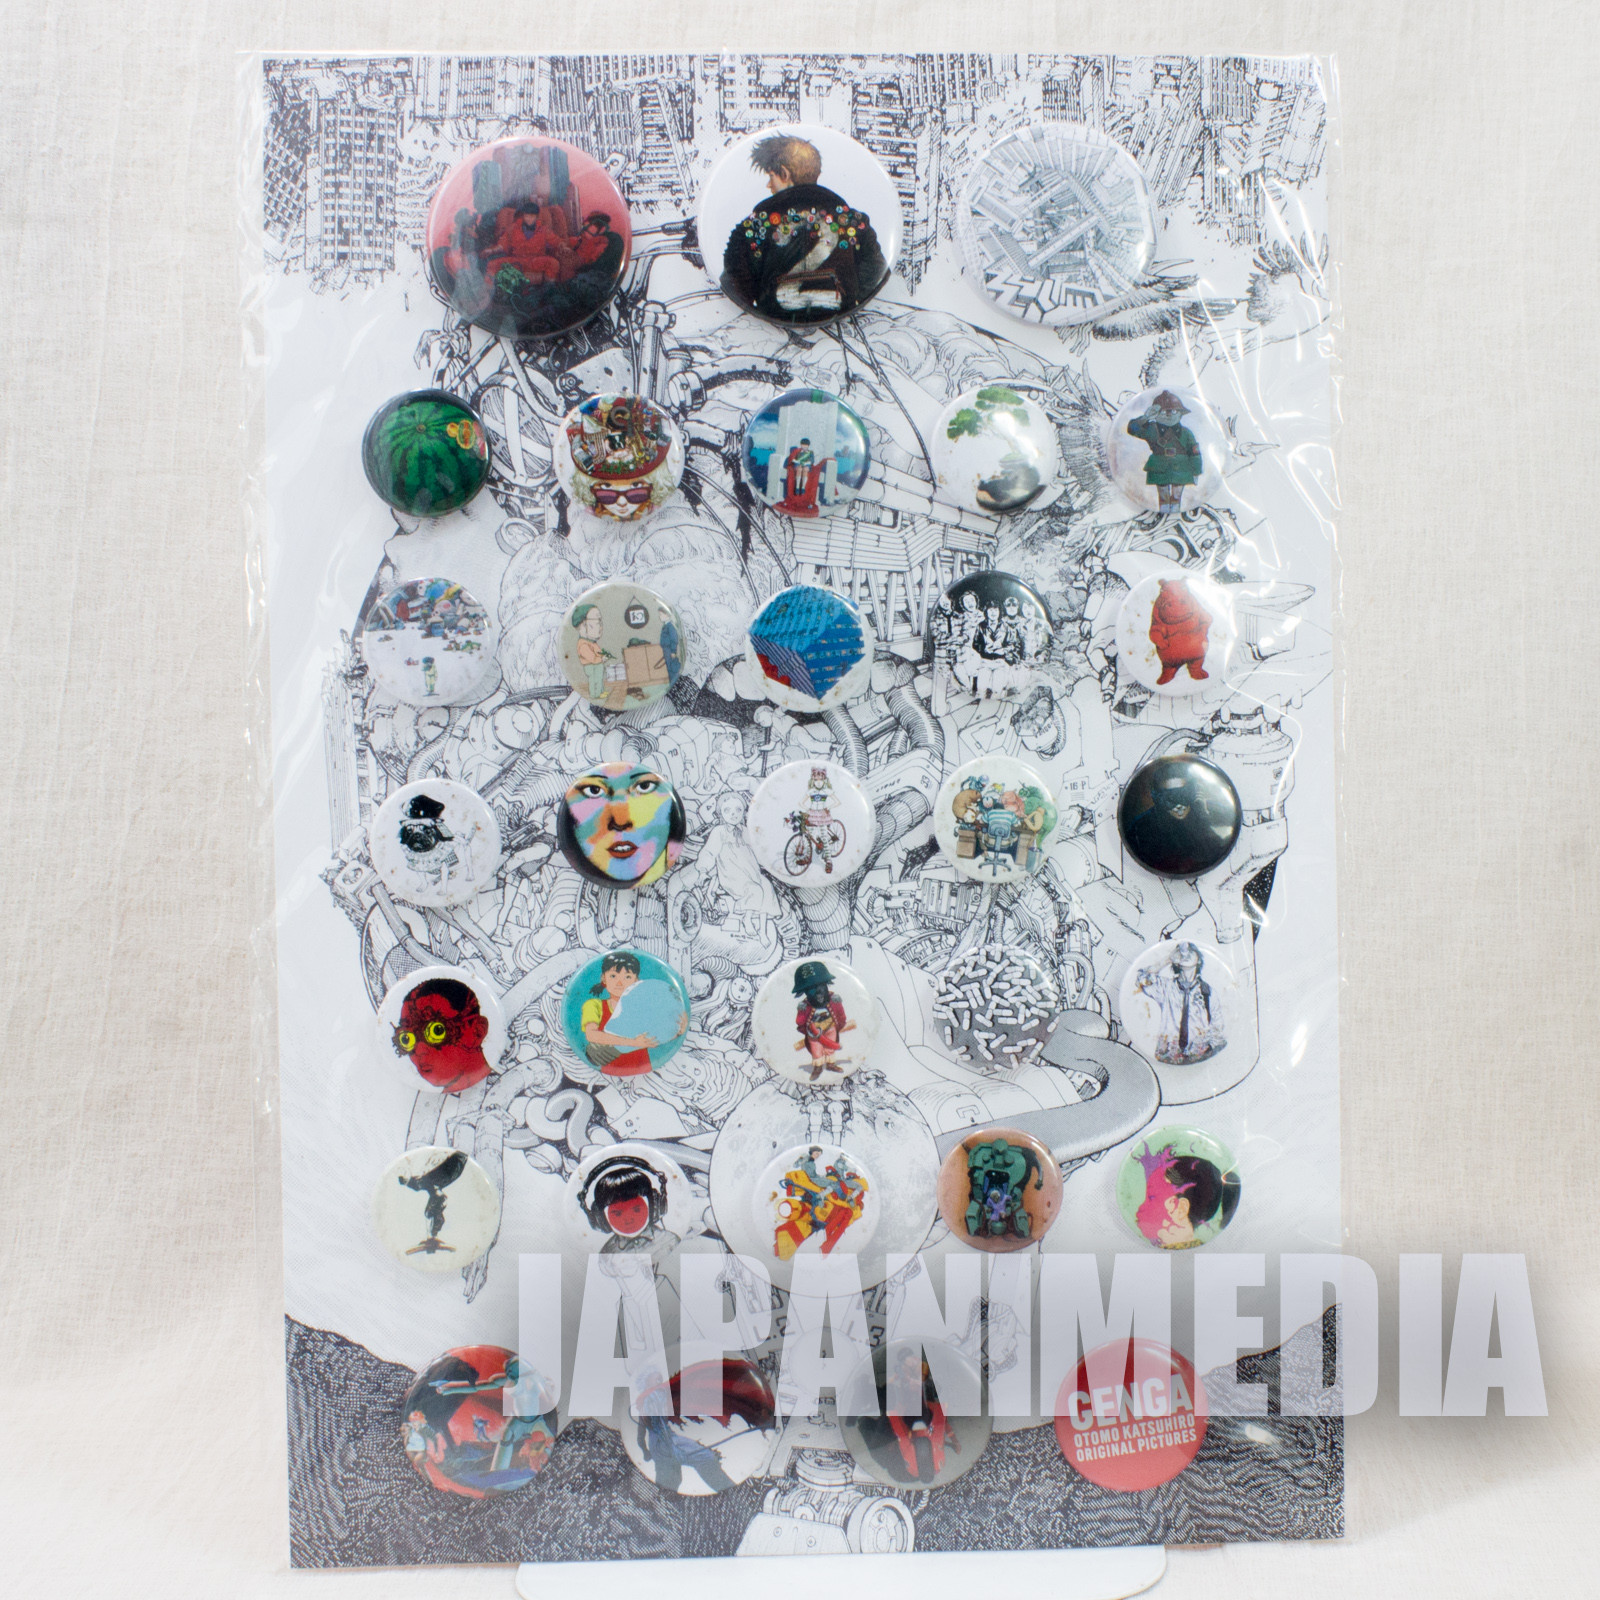 Katsuhiro Otomo GENGA Exhibition 2012 Can Button Badge Pins 32pc Set AKIRA